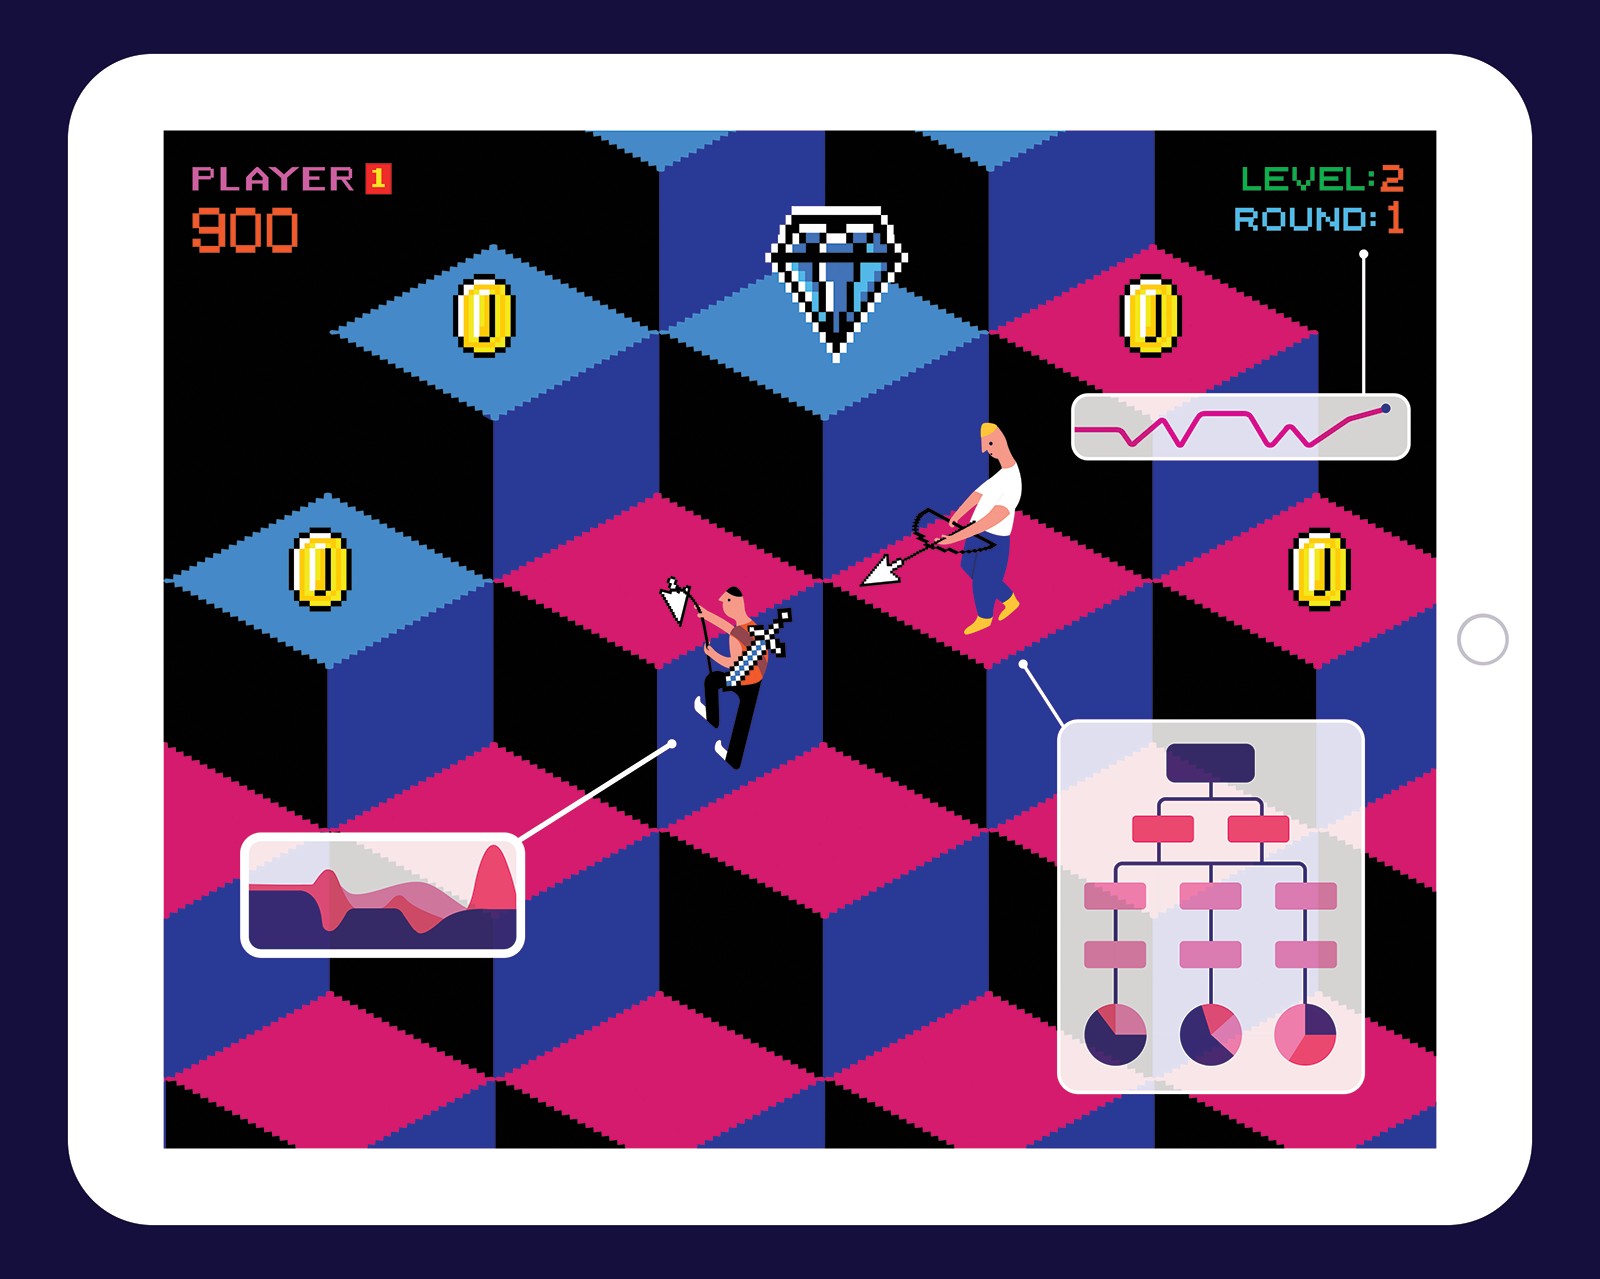 Illustration of a video game